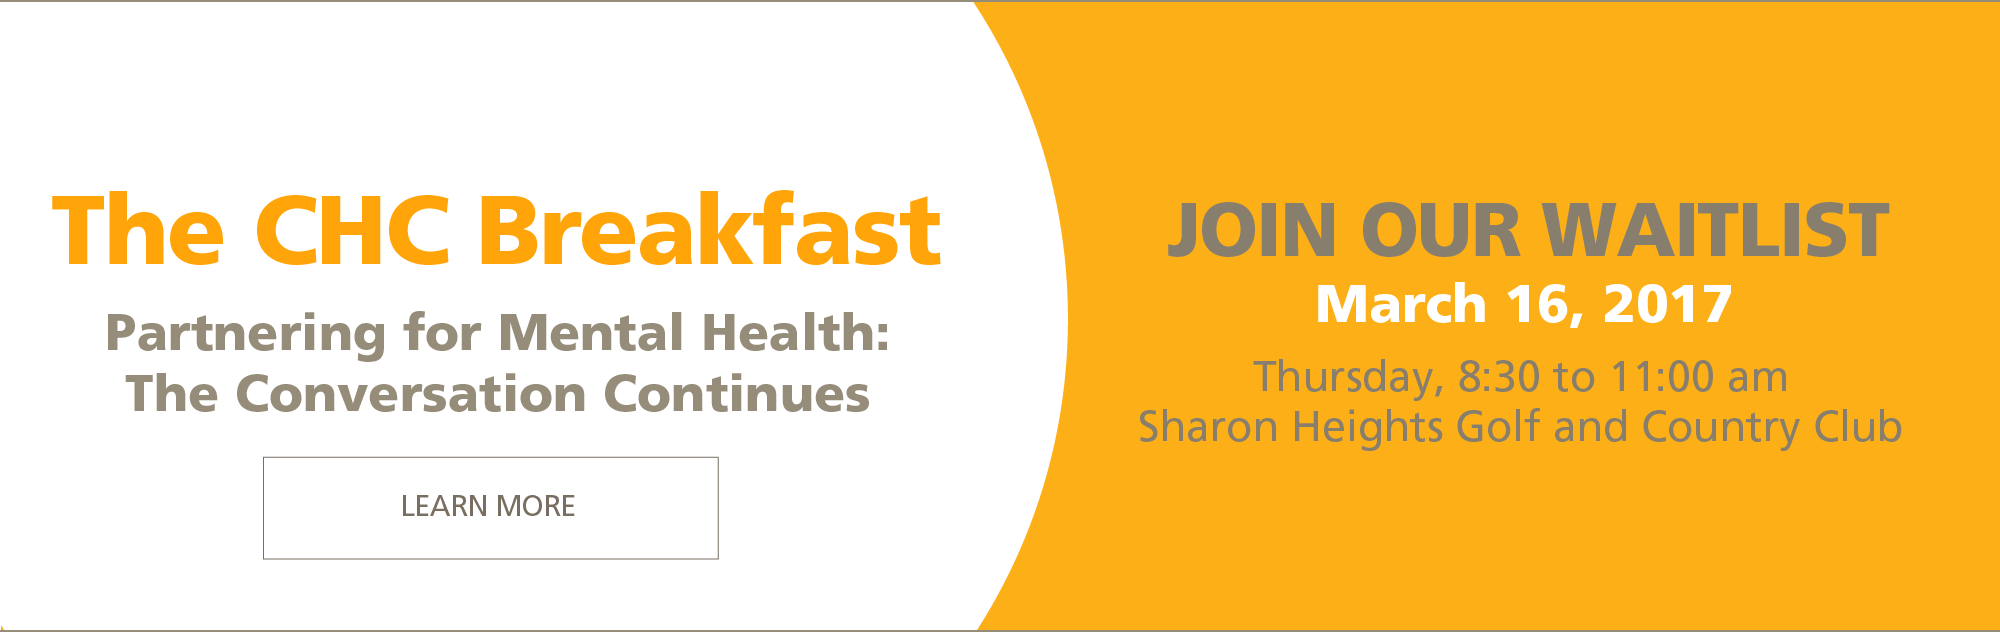 CHC Breakfast: Partnering for Mental Health, The Conversation Continues. JOIN OUR WAITING LIST. March 16, 2017. Thursday, 8:30 to 11:00 AM, Sharon Heights Golf and Country Club